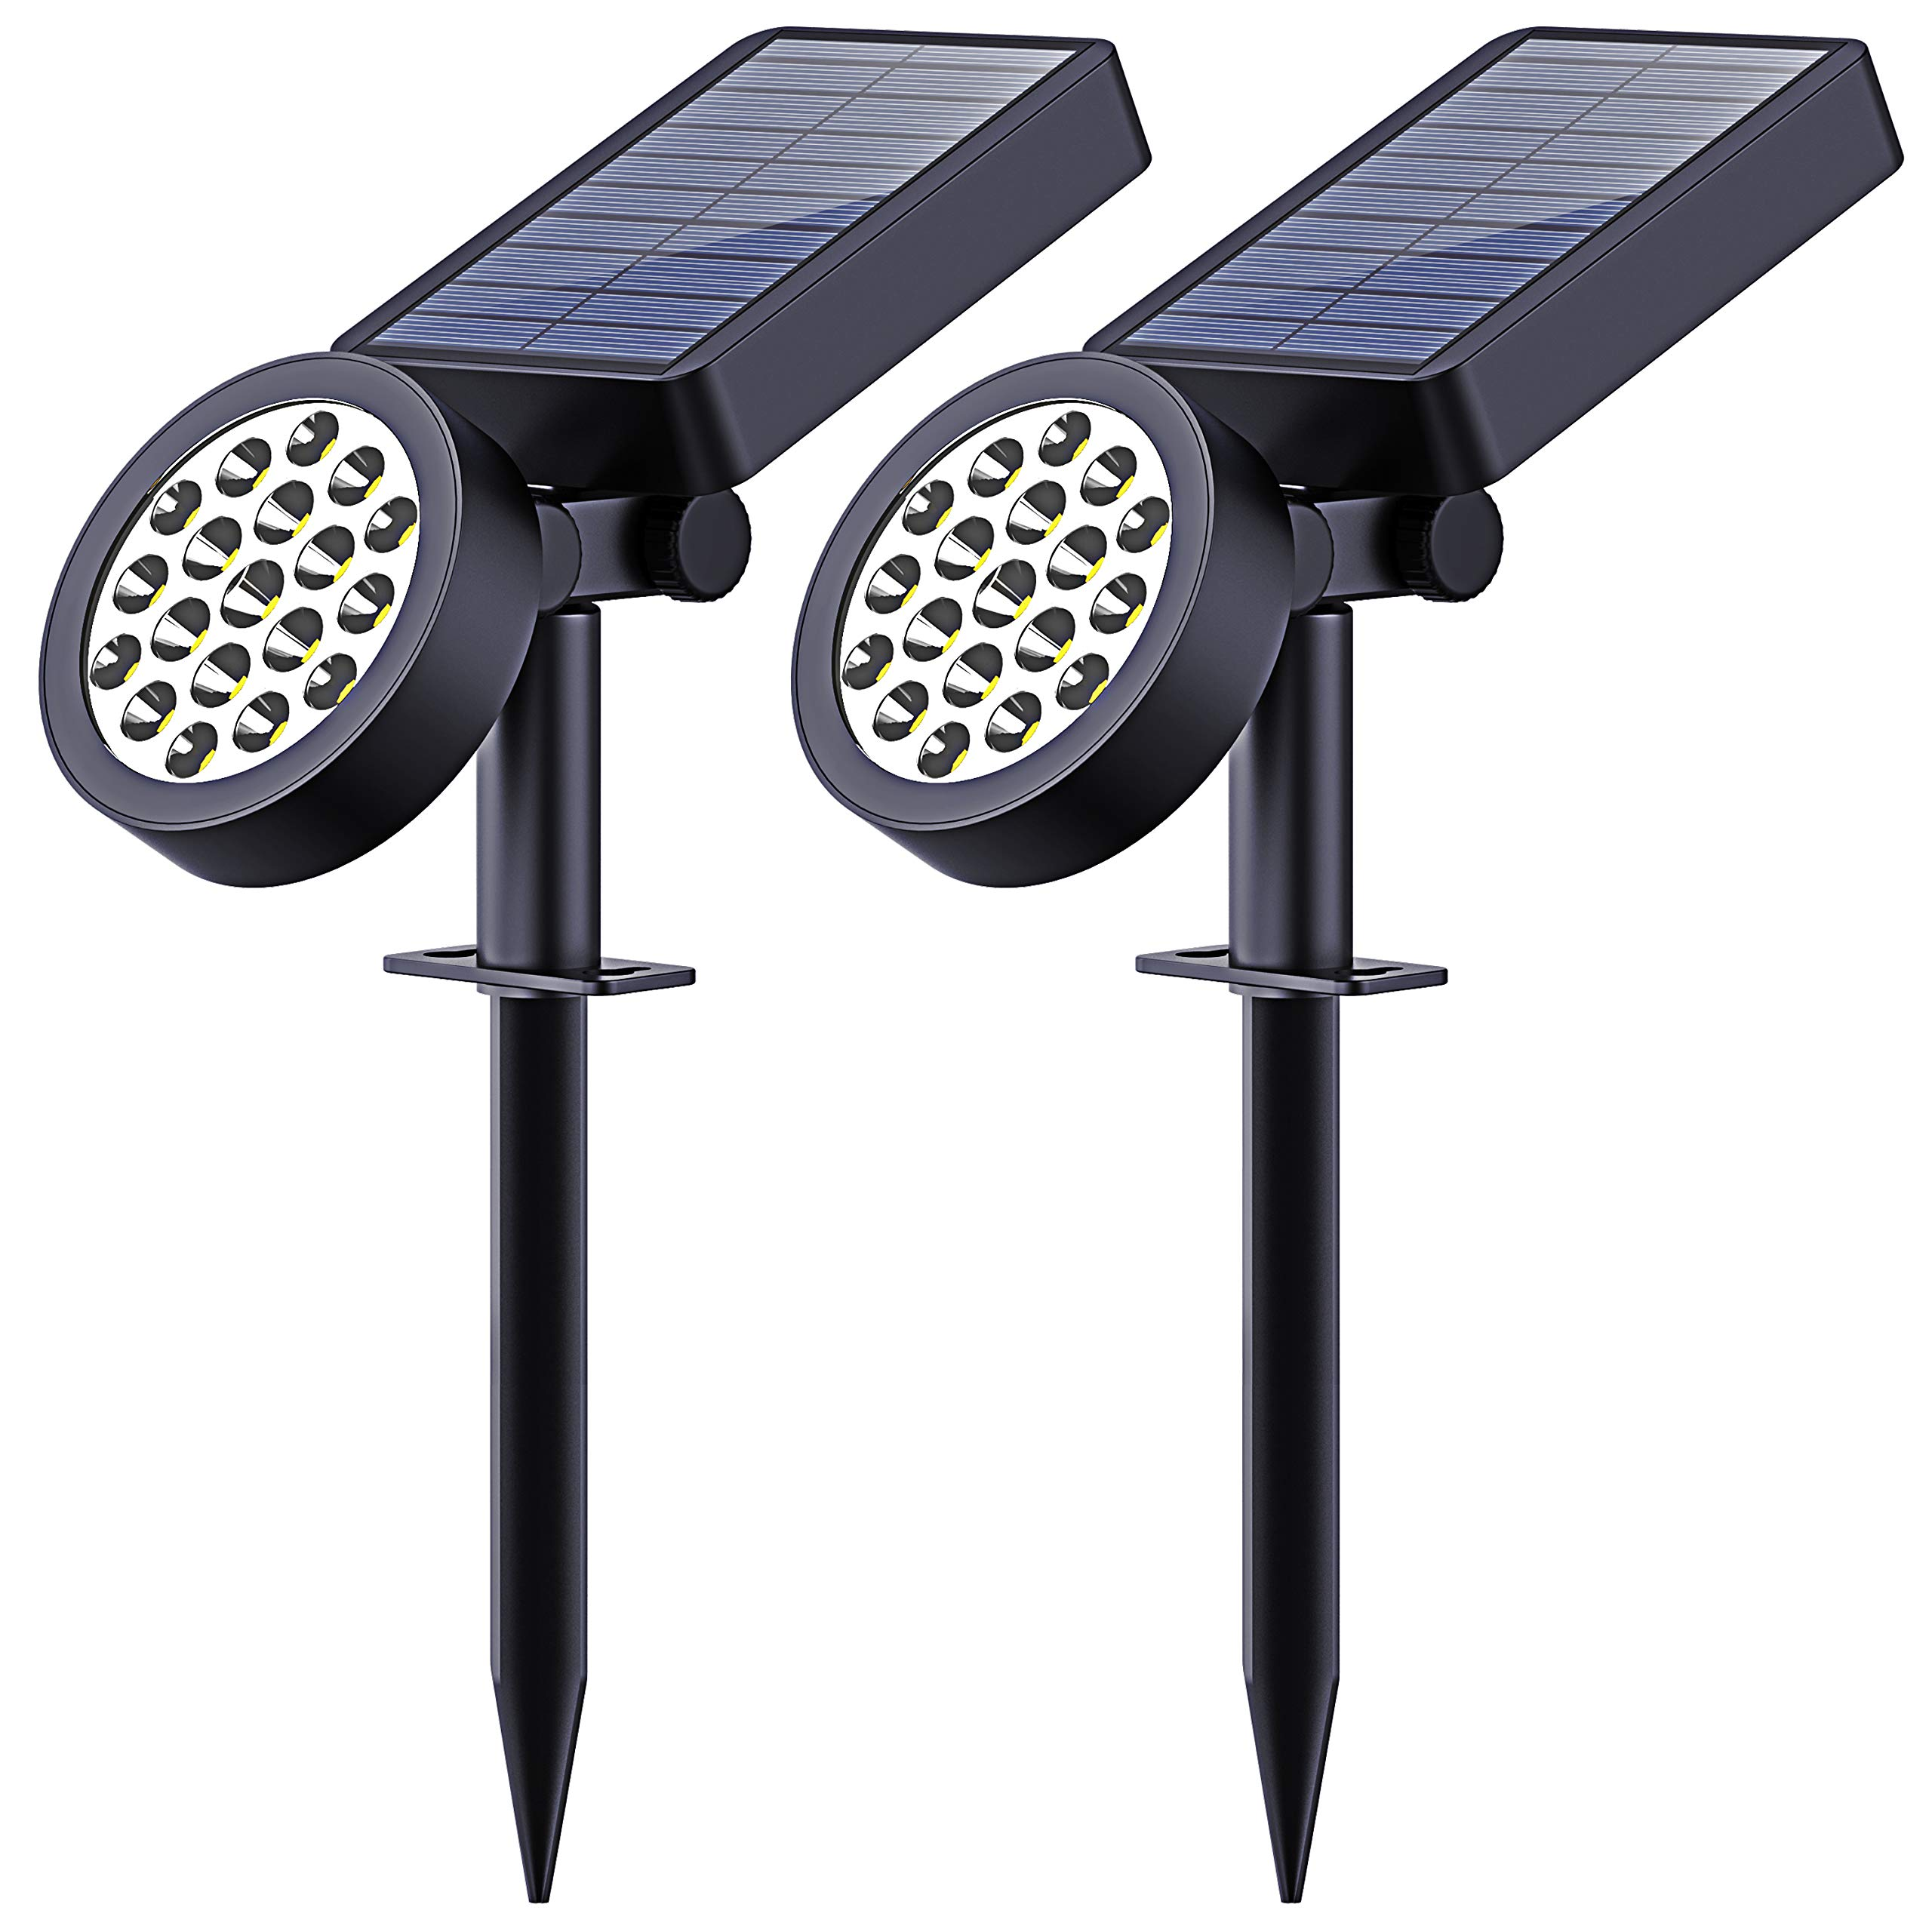 Solar Yard Lights Outdoor,19 LED Bulbs Solar Landscape Spotlights-Waterproof Outdoor Adjustable Wall Light Security Lighting Dark Sensing Auto On/Off for Patio Lawn Pool Yard Garage Garden, Pack of 2 by LEKNES